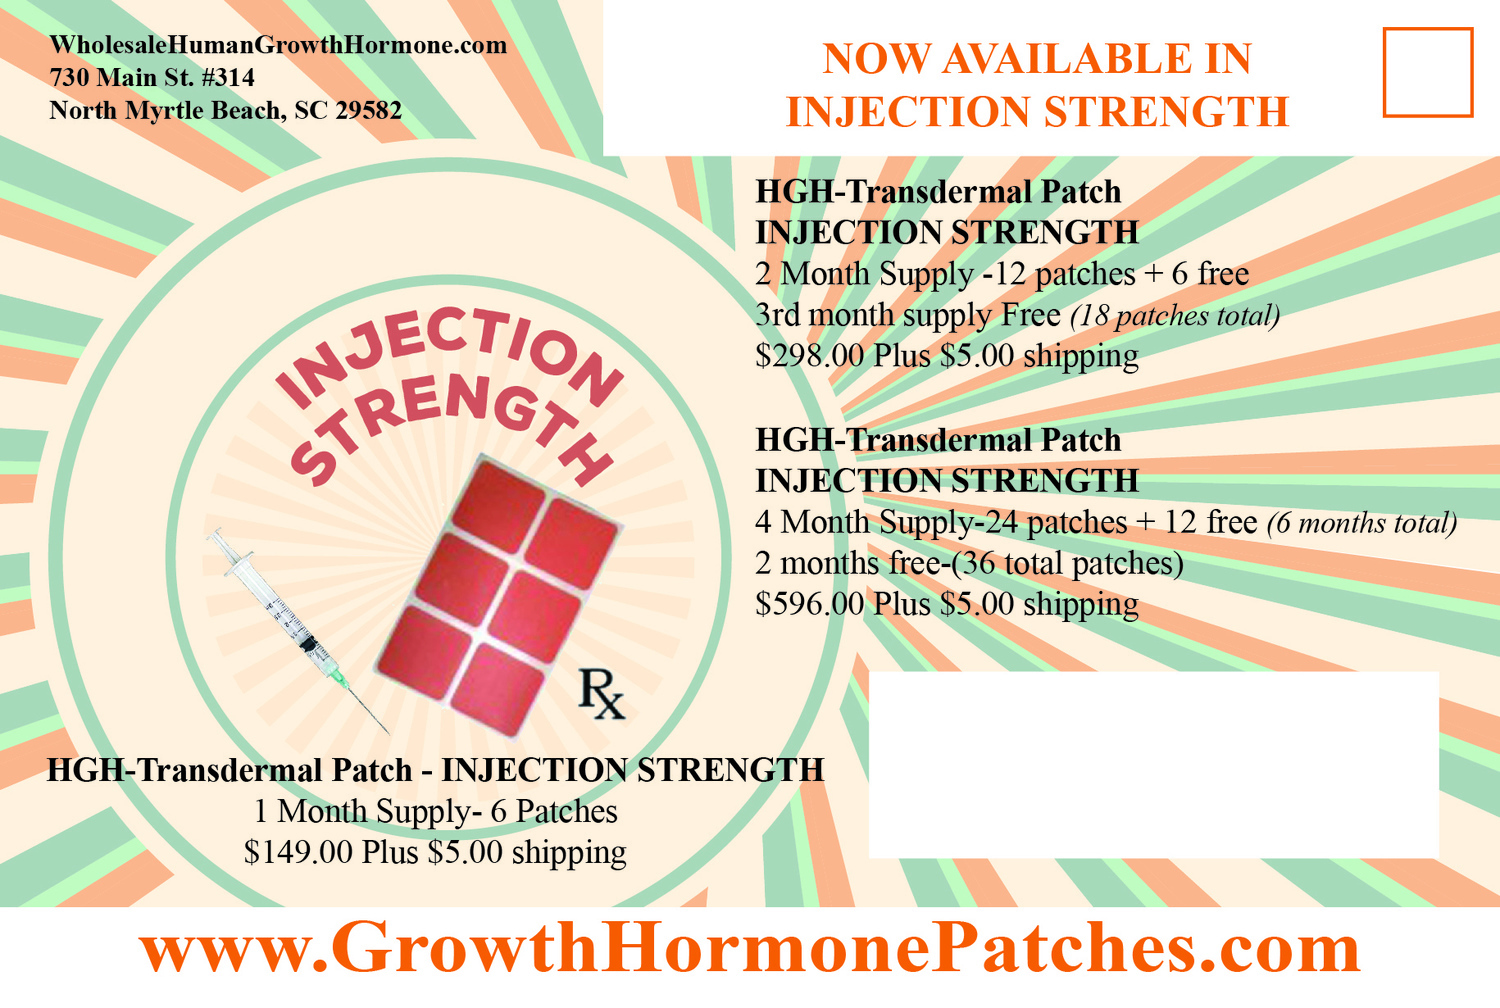 HGH-Transdermal Injection strength patches (1 month Supply - 6 Patches)